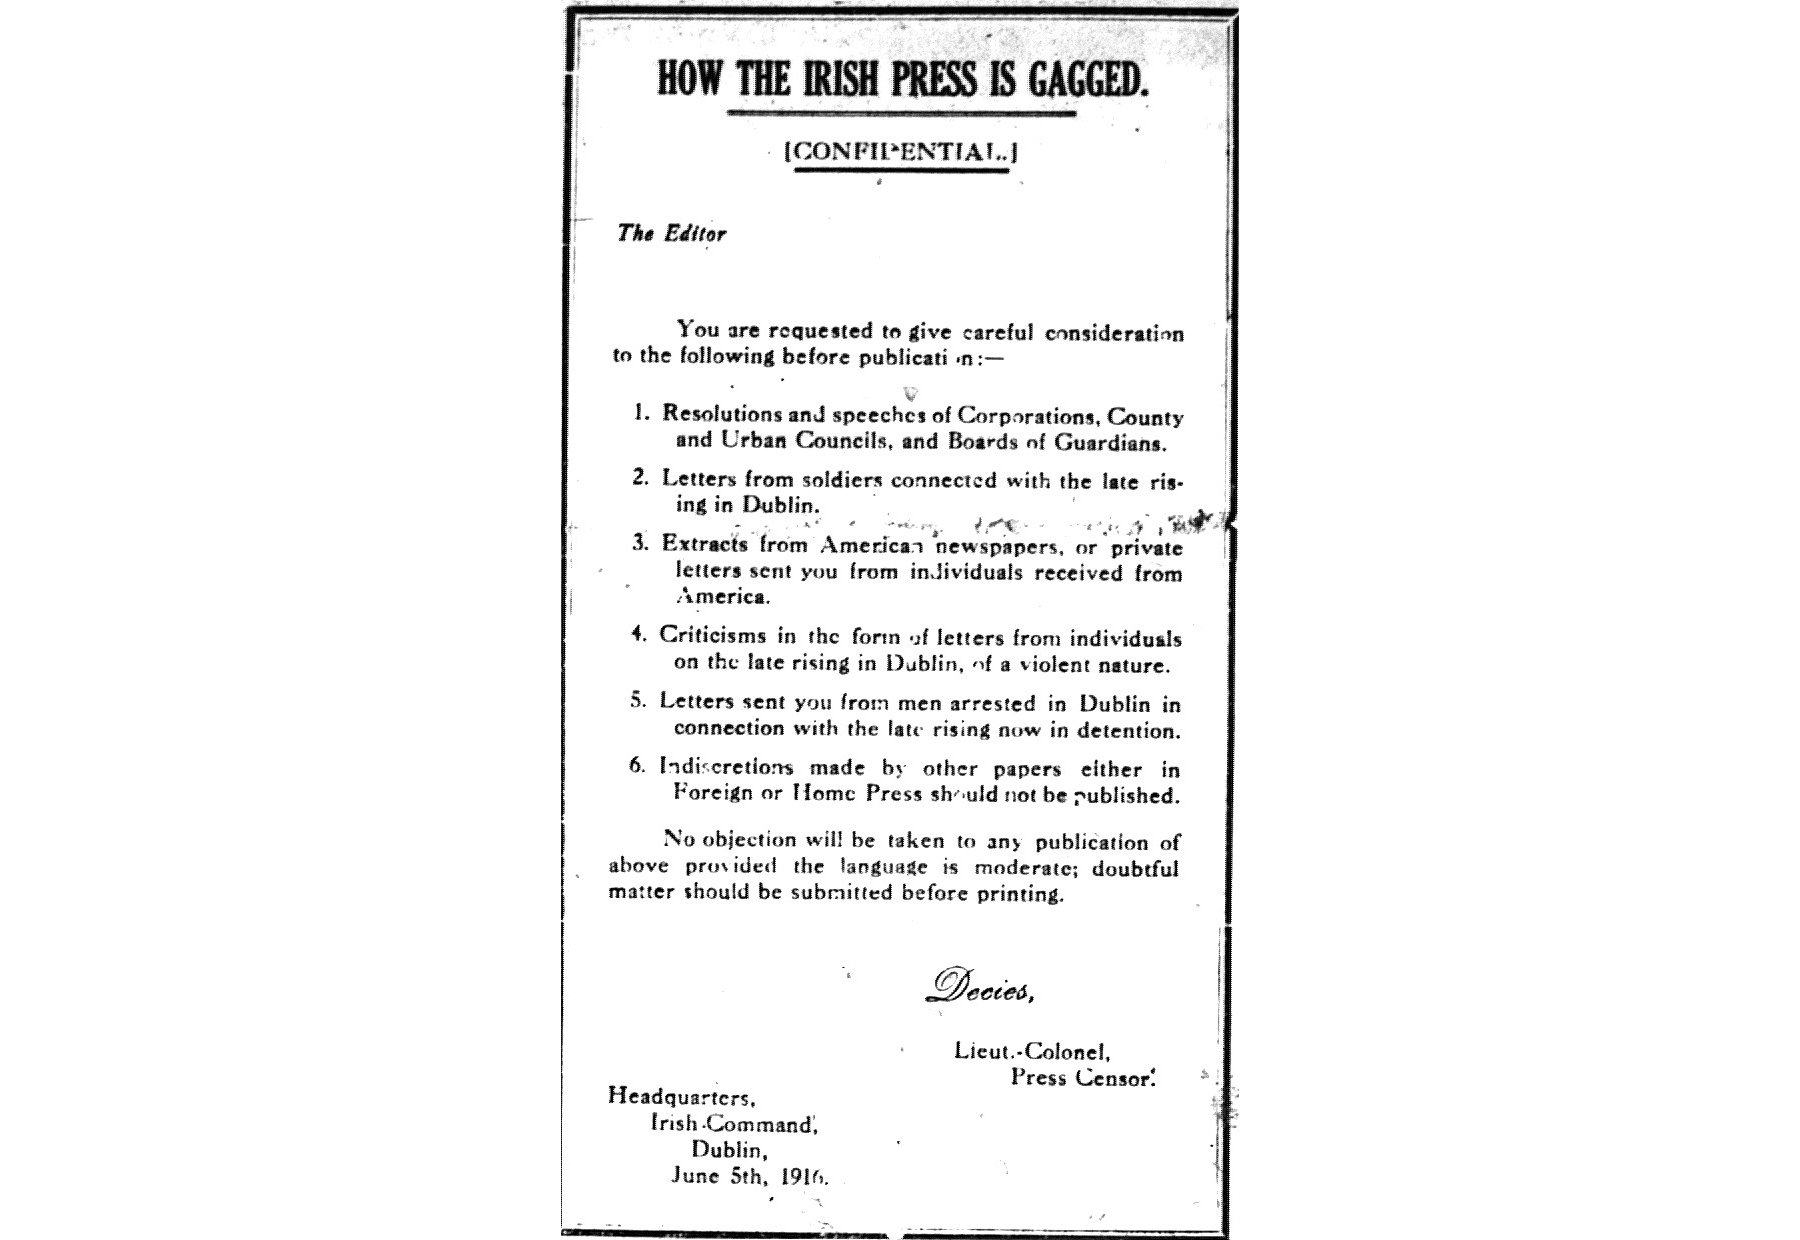 A copy of the censorship directive.